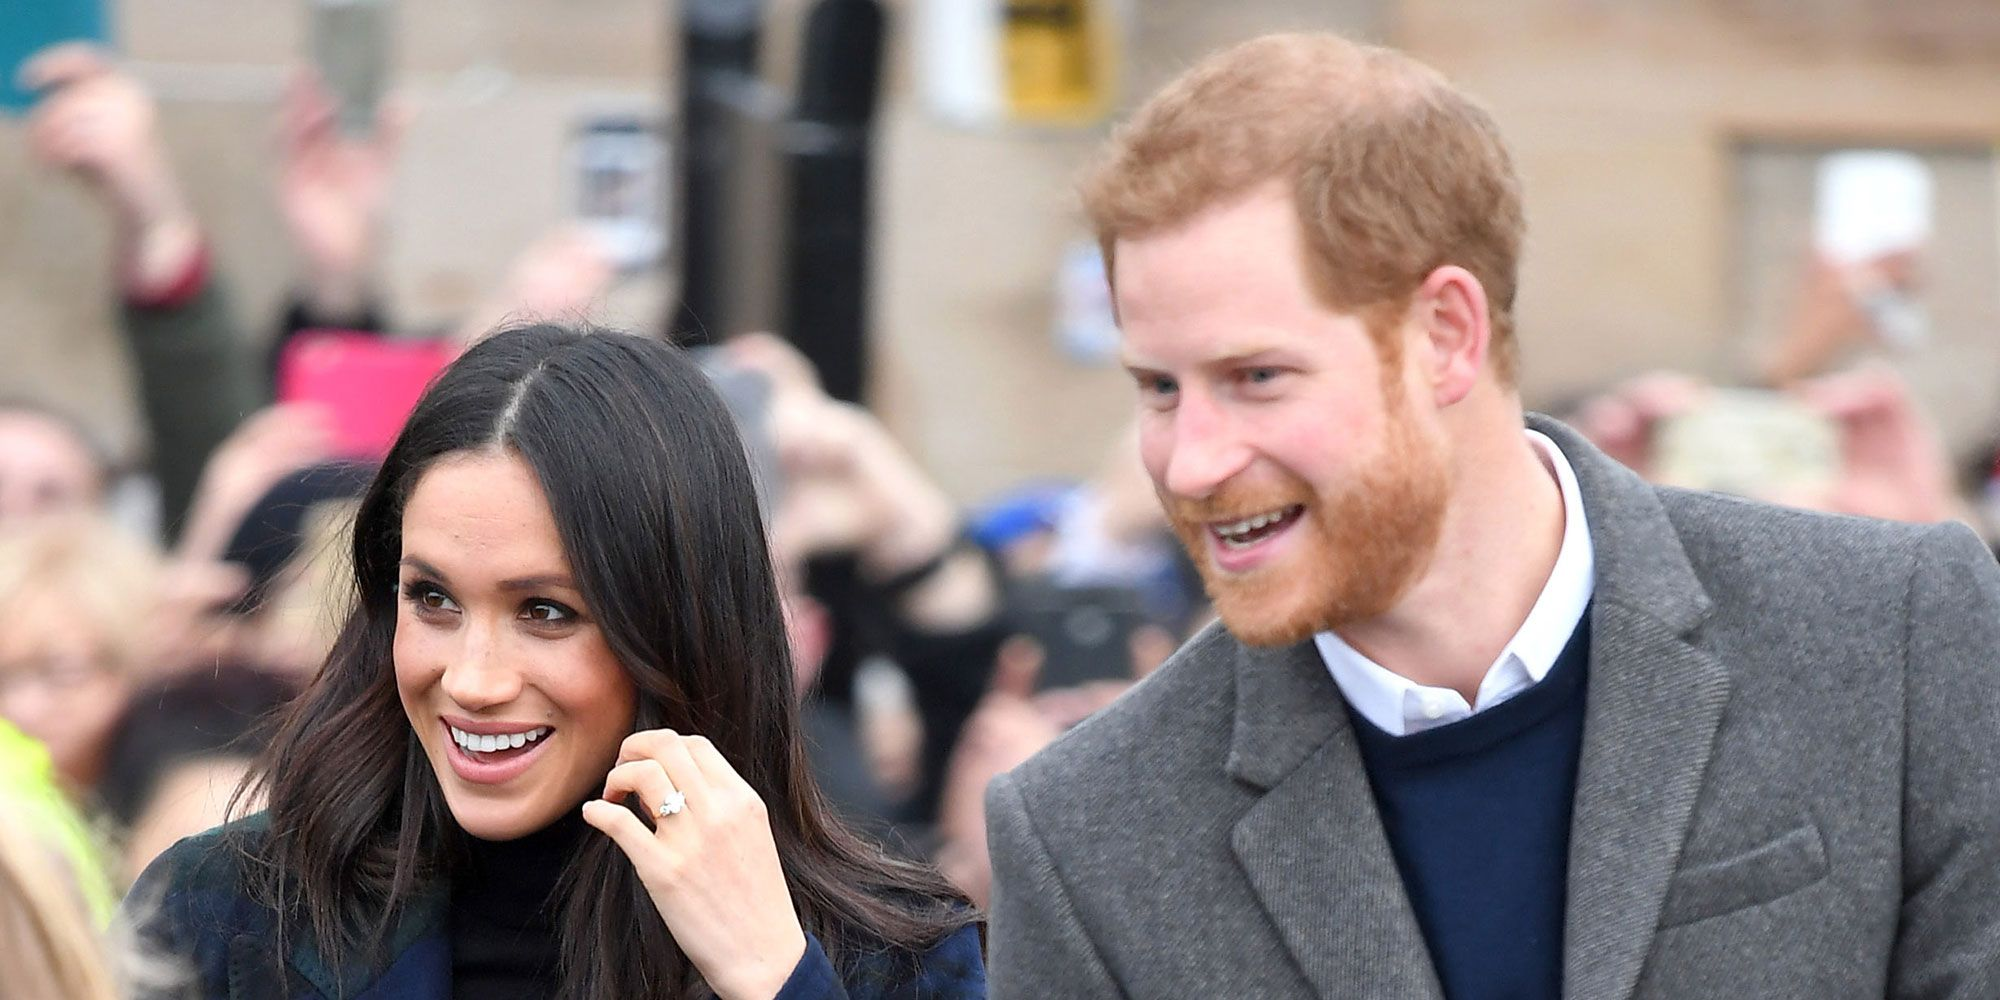 Prince Harry and Meghan Markle were sent post containing an unknown white powder